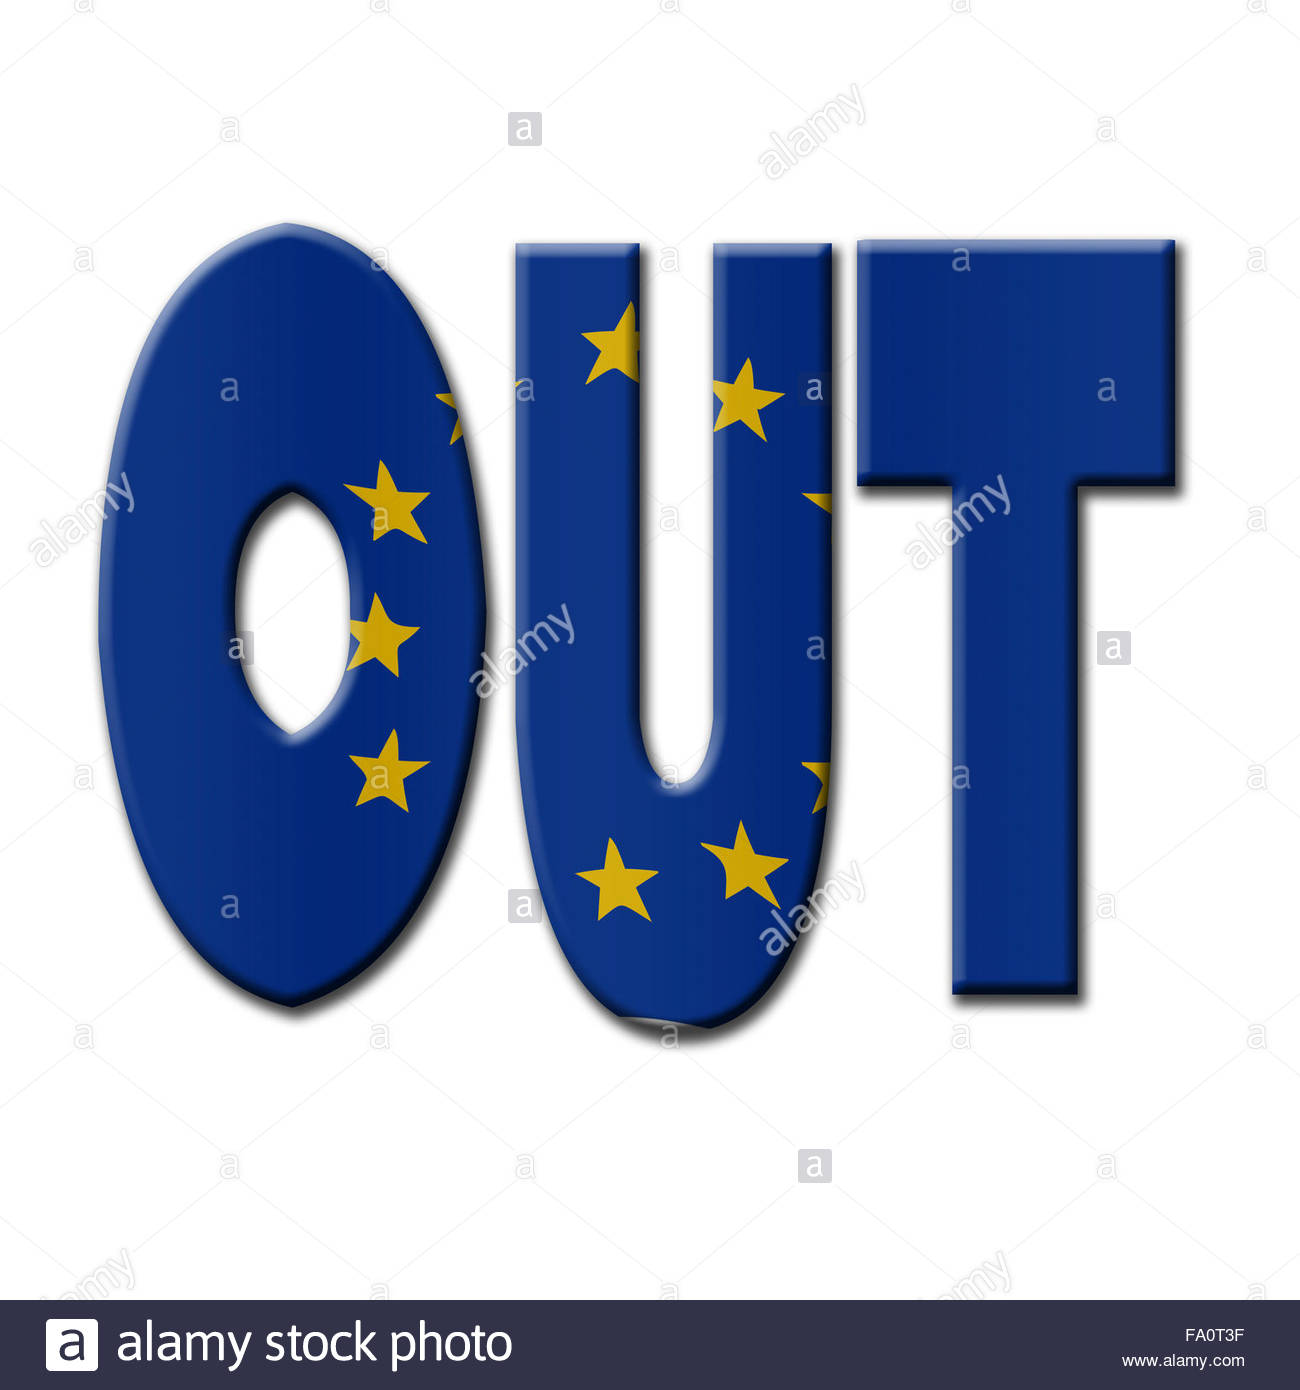 Digital Illustration - British In/Out EU referendum.  OUT with European Union flag. - Stock Image